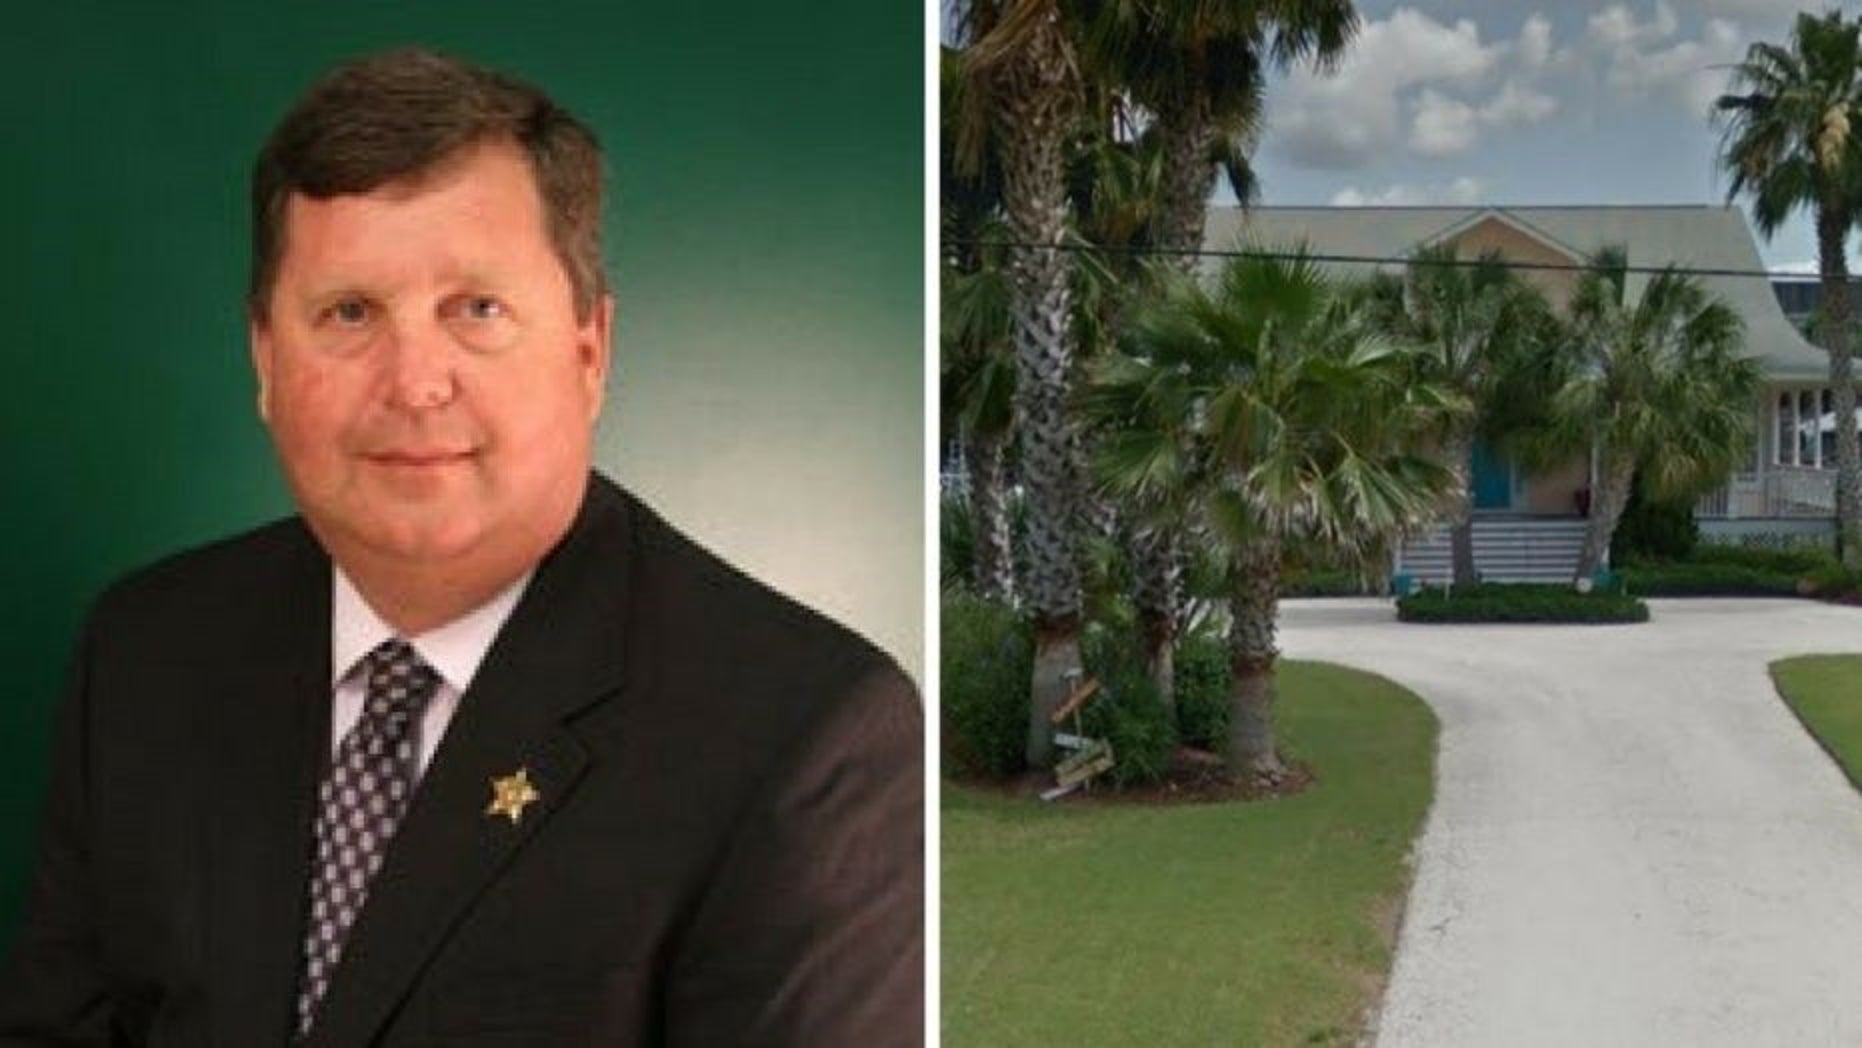 Etowah County Sheriff Todd Entrekin who came under scrutiny for pocketing money from an inmate food fund to buy a home in Orange Beach, Ala., lost a primary on Tuesday, June 5, 2018.